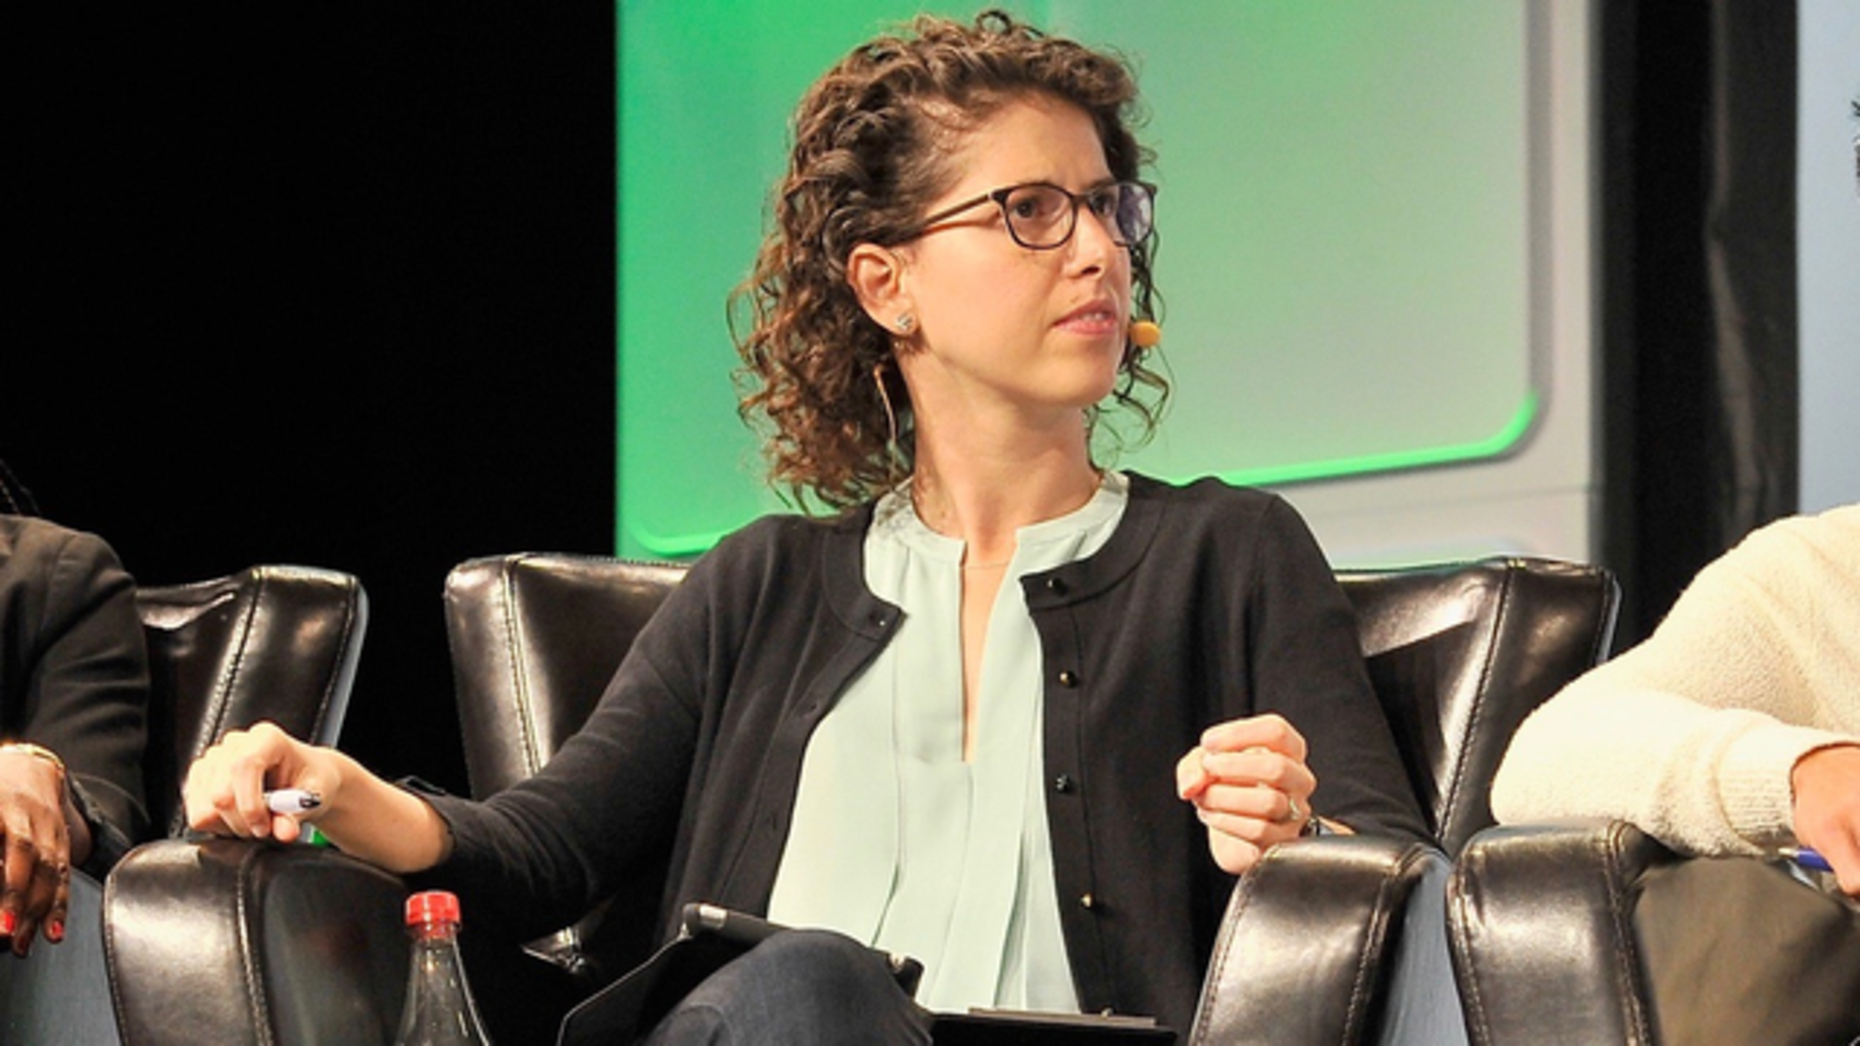 Benchmark partner Sarah Tavel. Photo by Flickr/TechCrunch